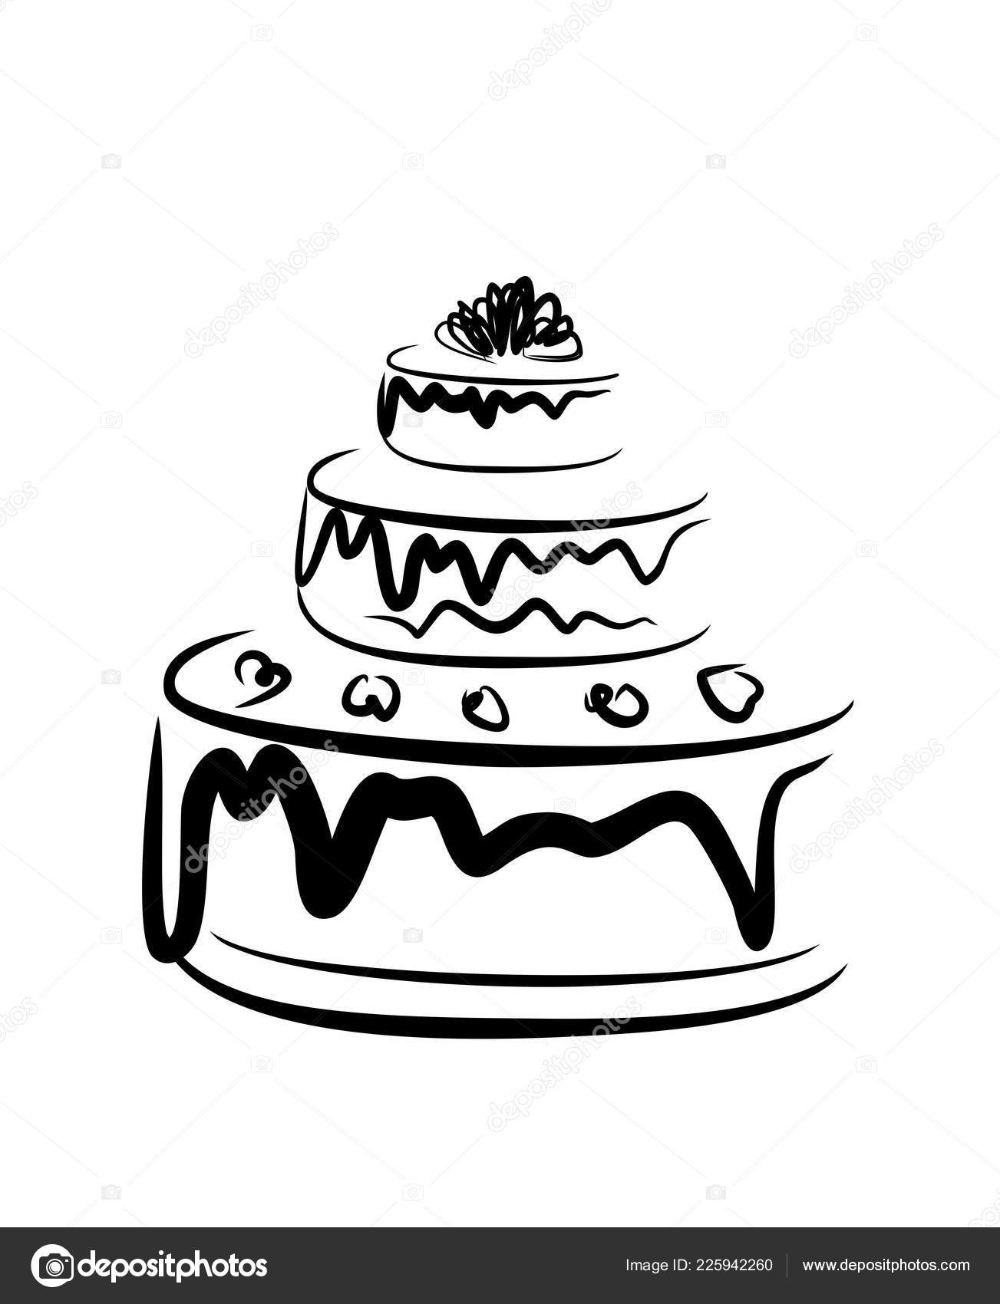 cake clipart black and white Google Search Elegant